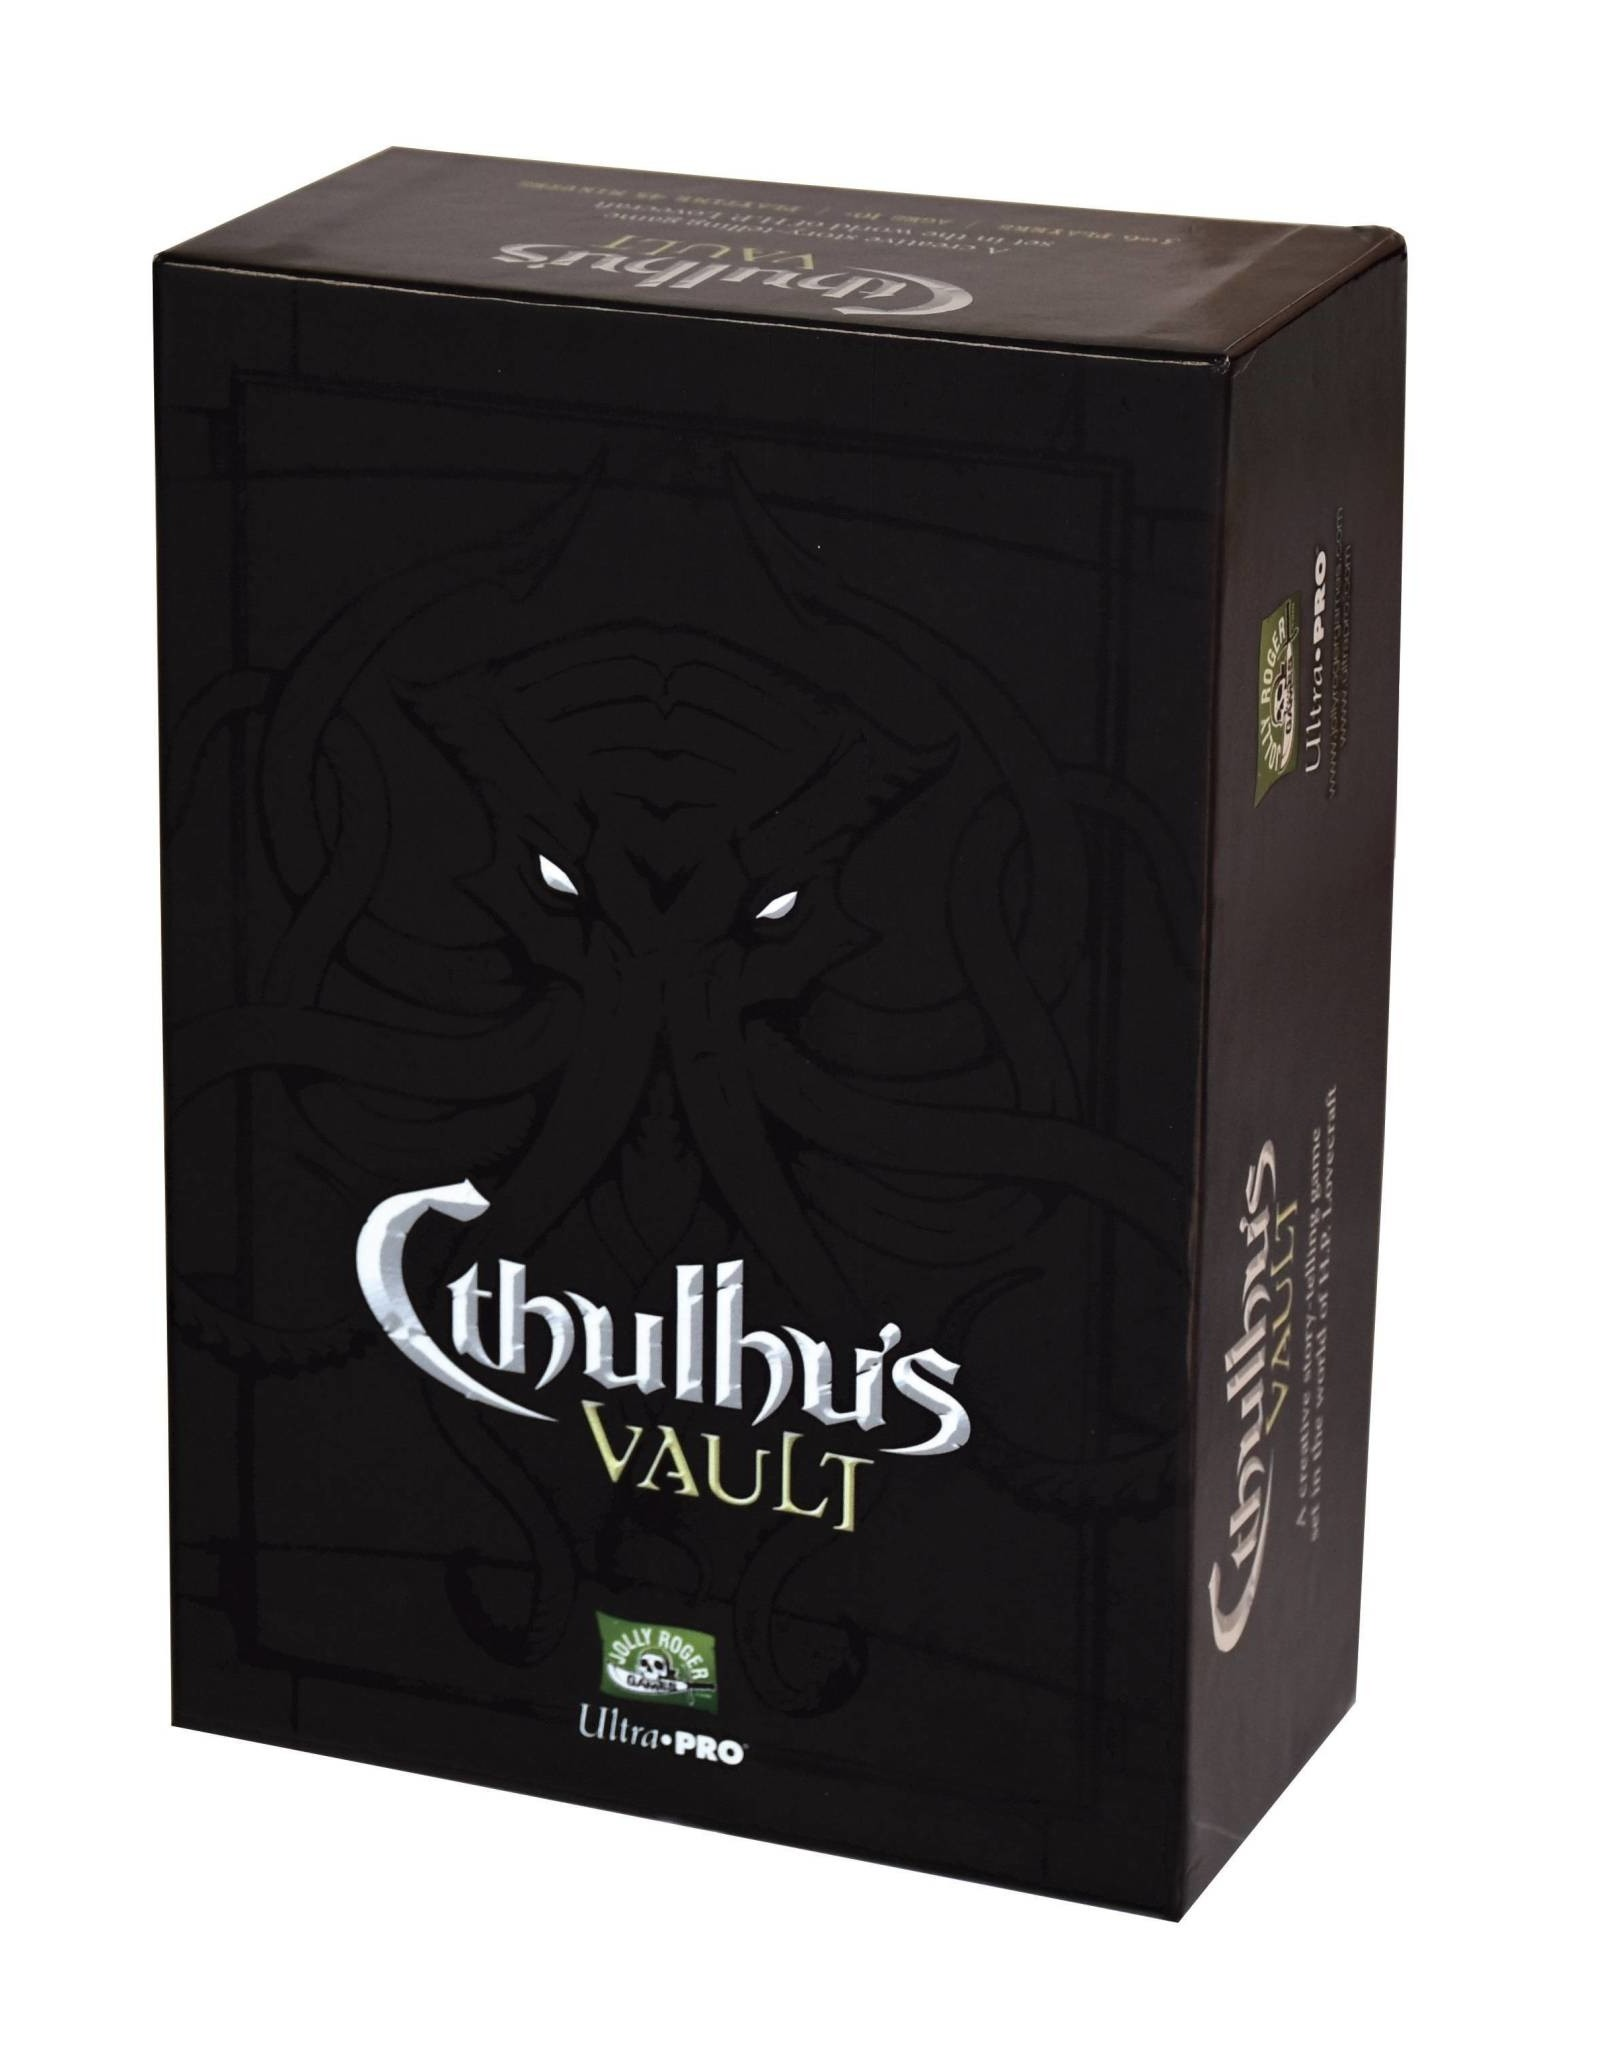 Ultra PRO International Cthulhus Vault Story Telling Game